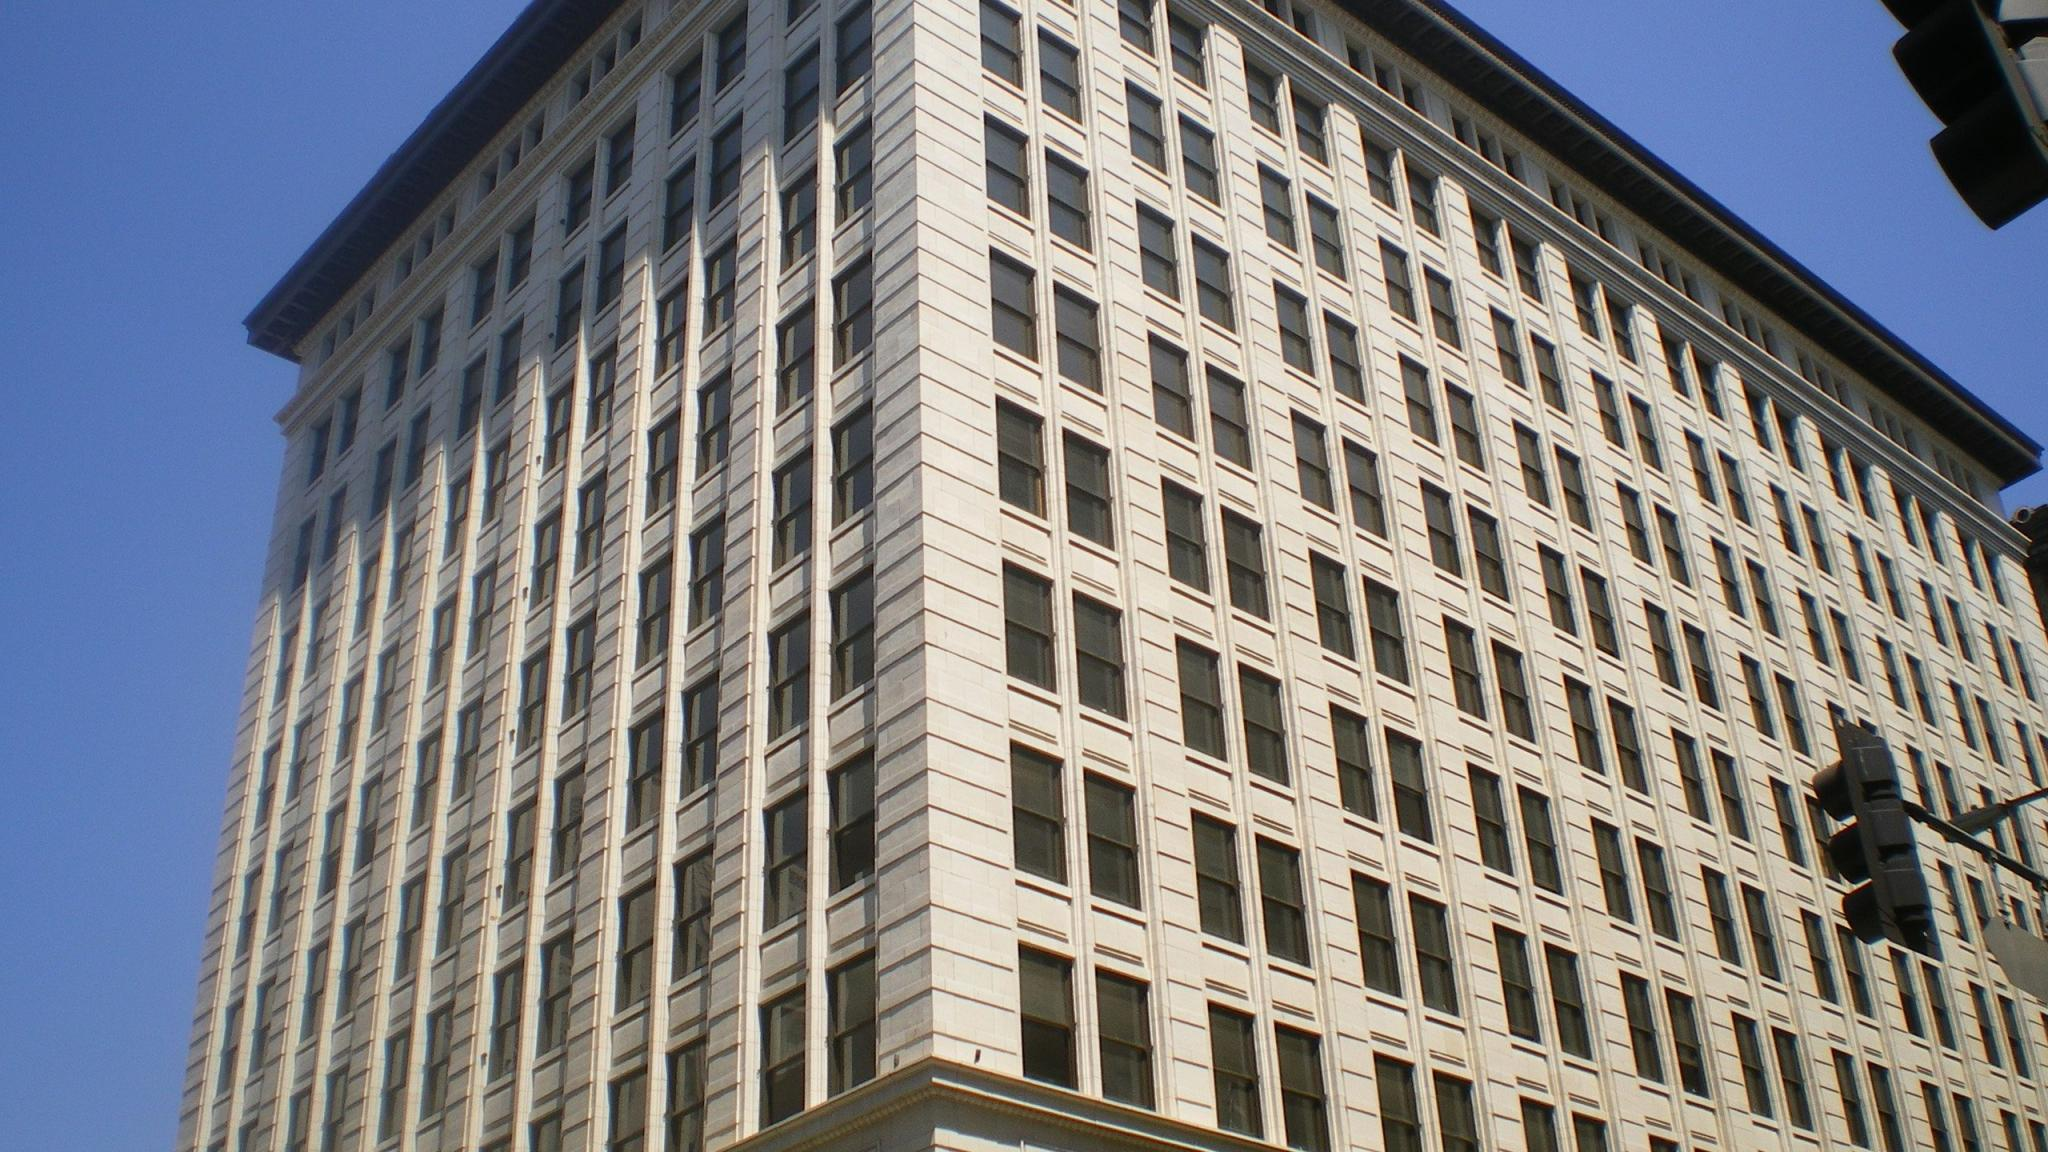 Rowan Building Los Angeles   United States  USA Pictures HD Wallpaper